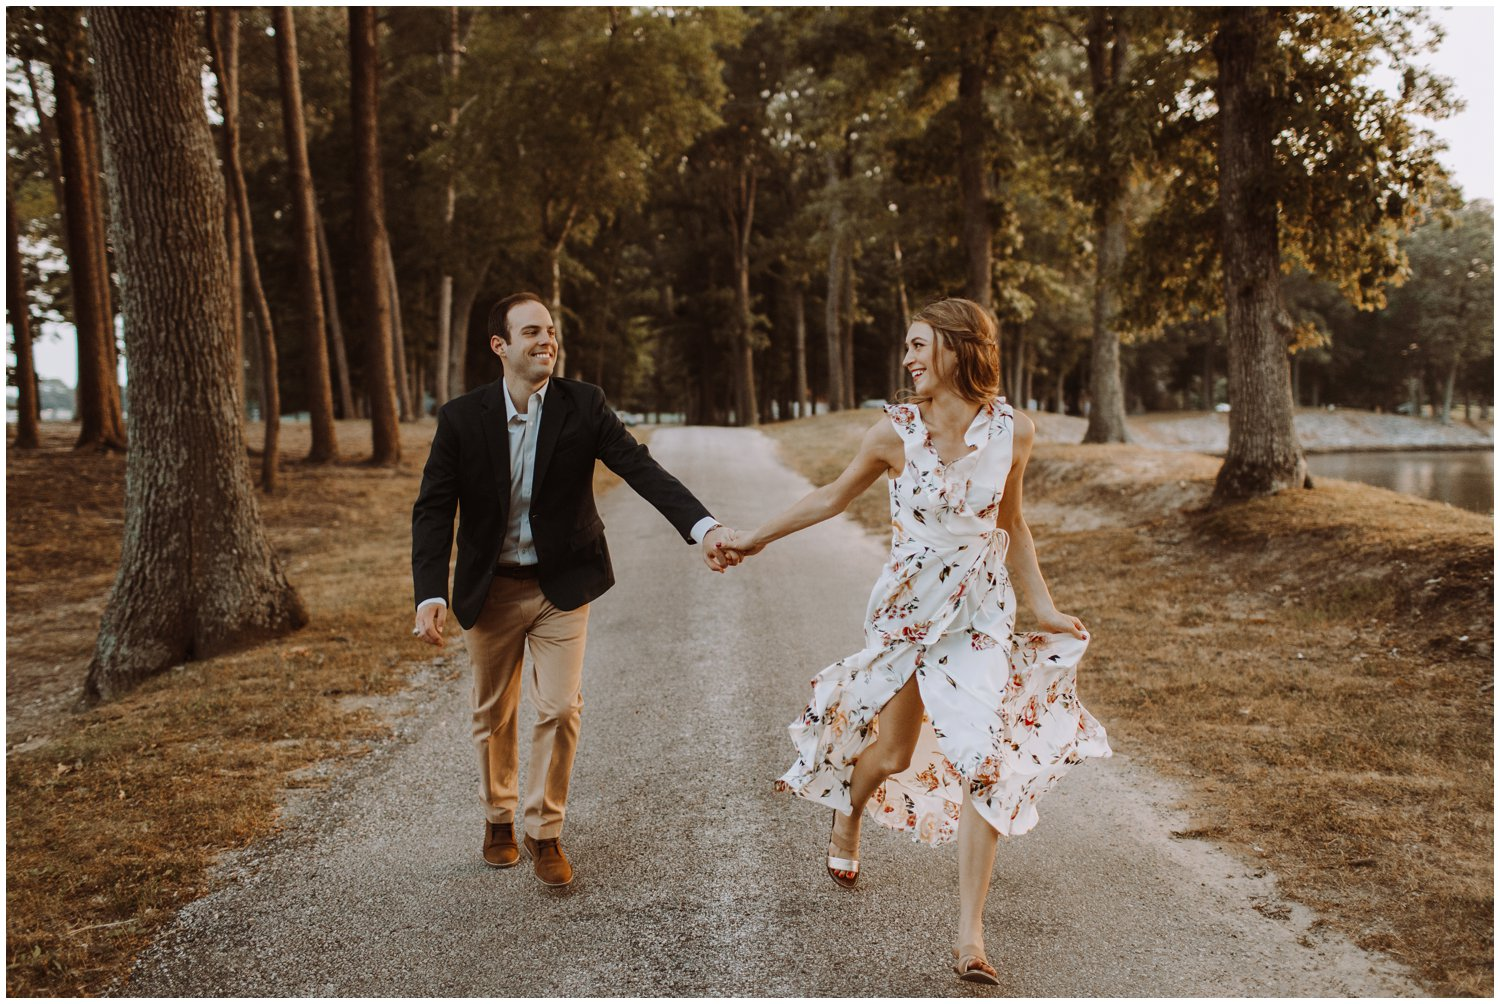 sunset engagement photos | Baltimore wedding photographer | Easton wedding photographer | Eastern shore engagement photography | Wye River Center | Easton Airport Engagement | nature wedding photography